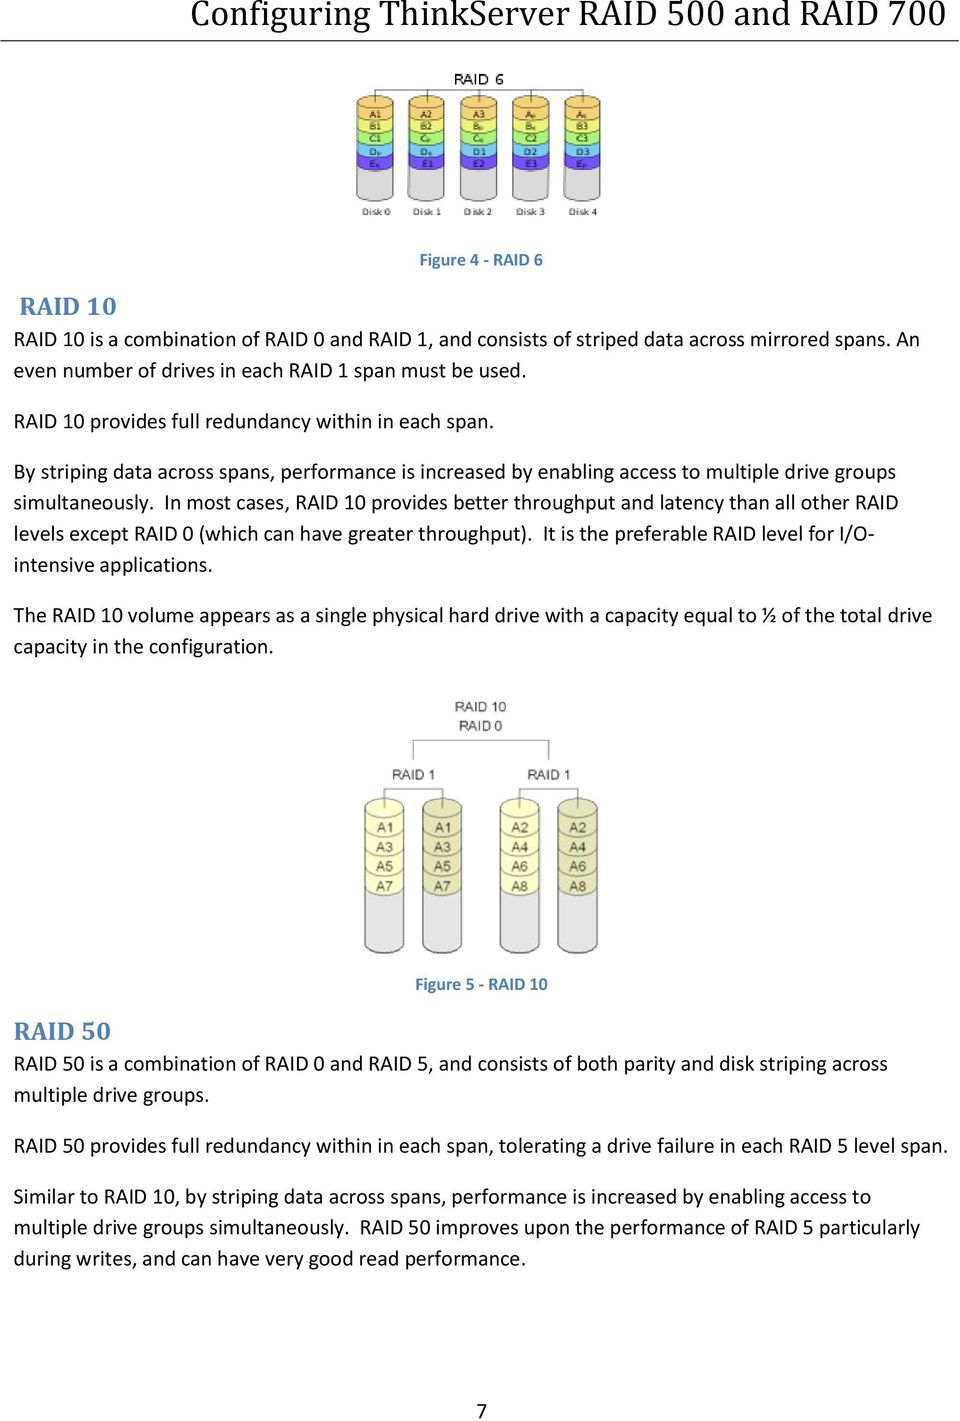 In most cases, RAID 10 provides better throughput and latency than all other RAID levels except RAID 0 (which can have greater throughput).